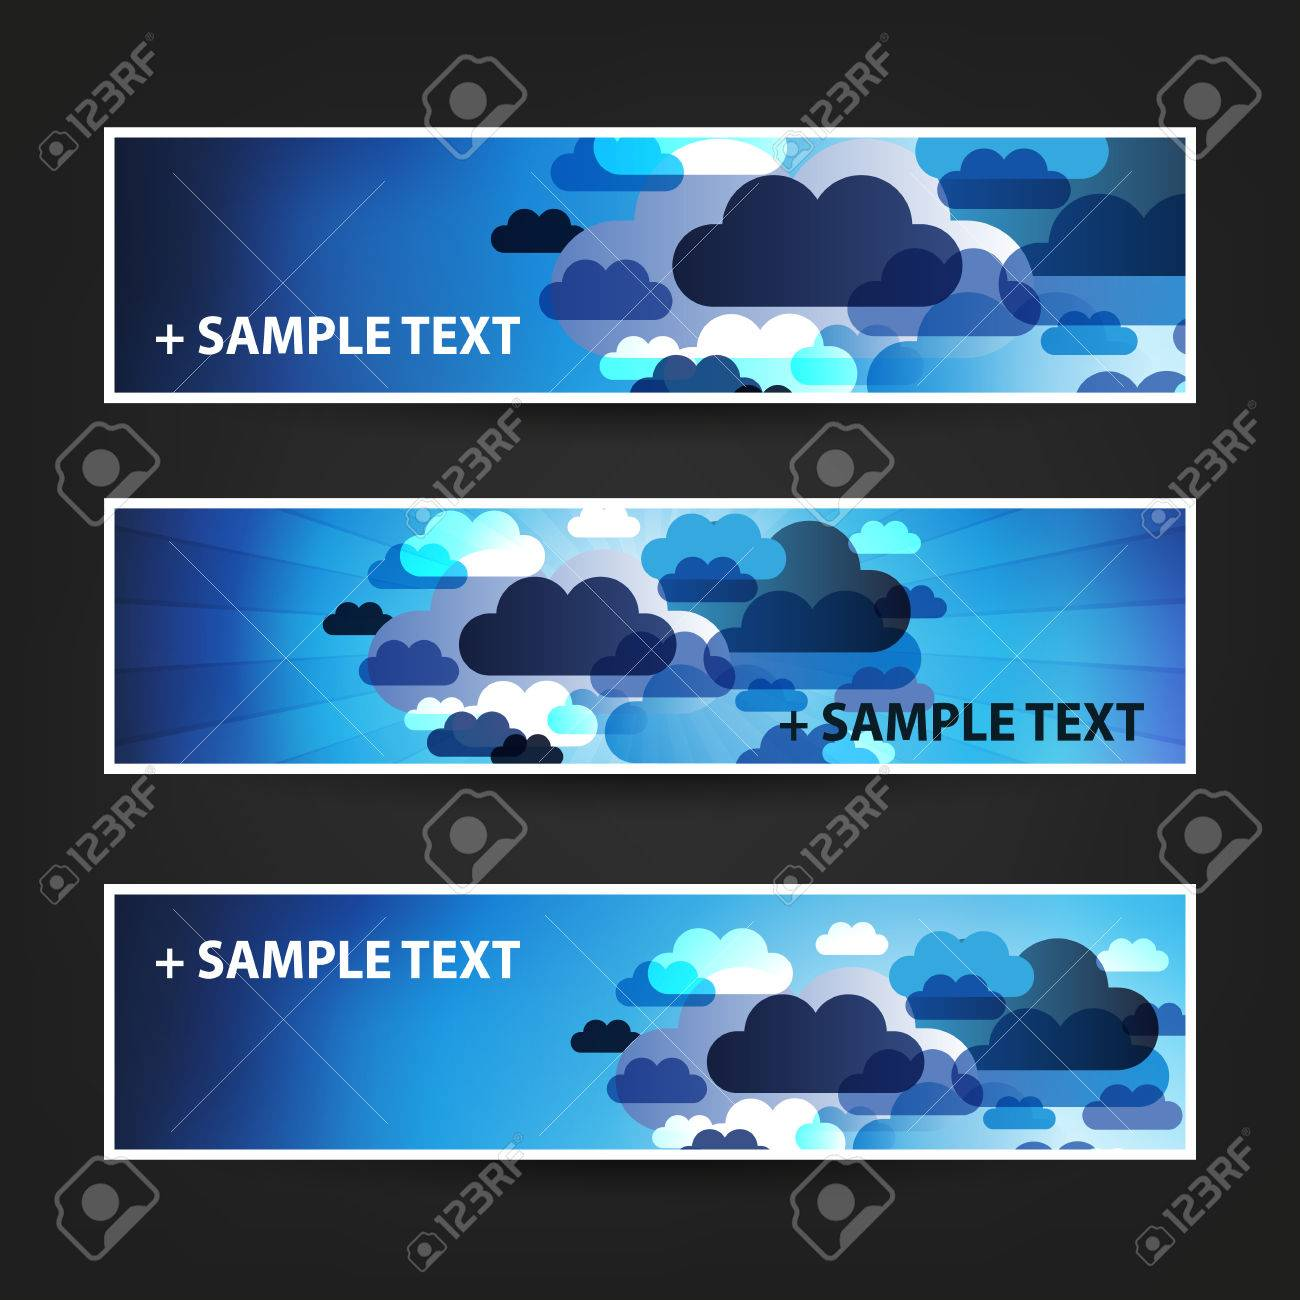 set of horizontal banner background designs ad templates colors set of horizontal banner background designs ad templates colors blue white